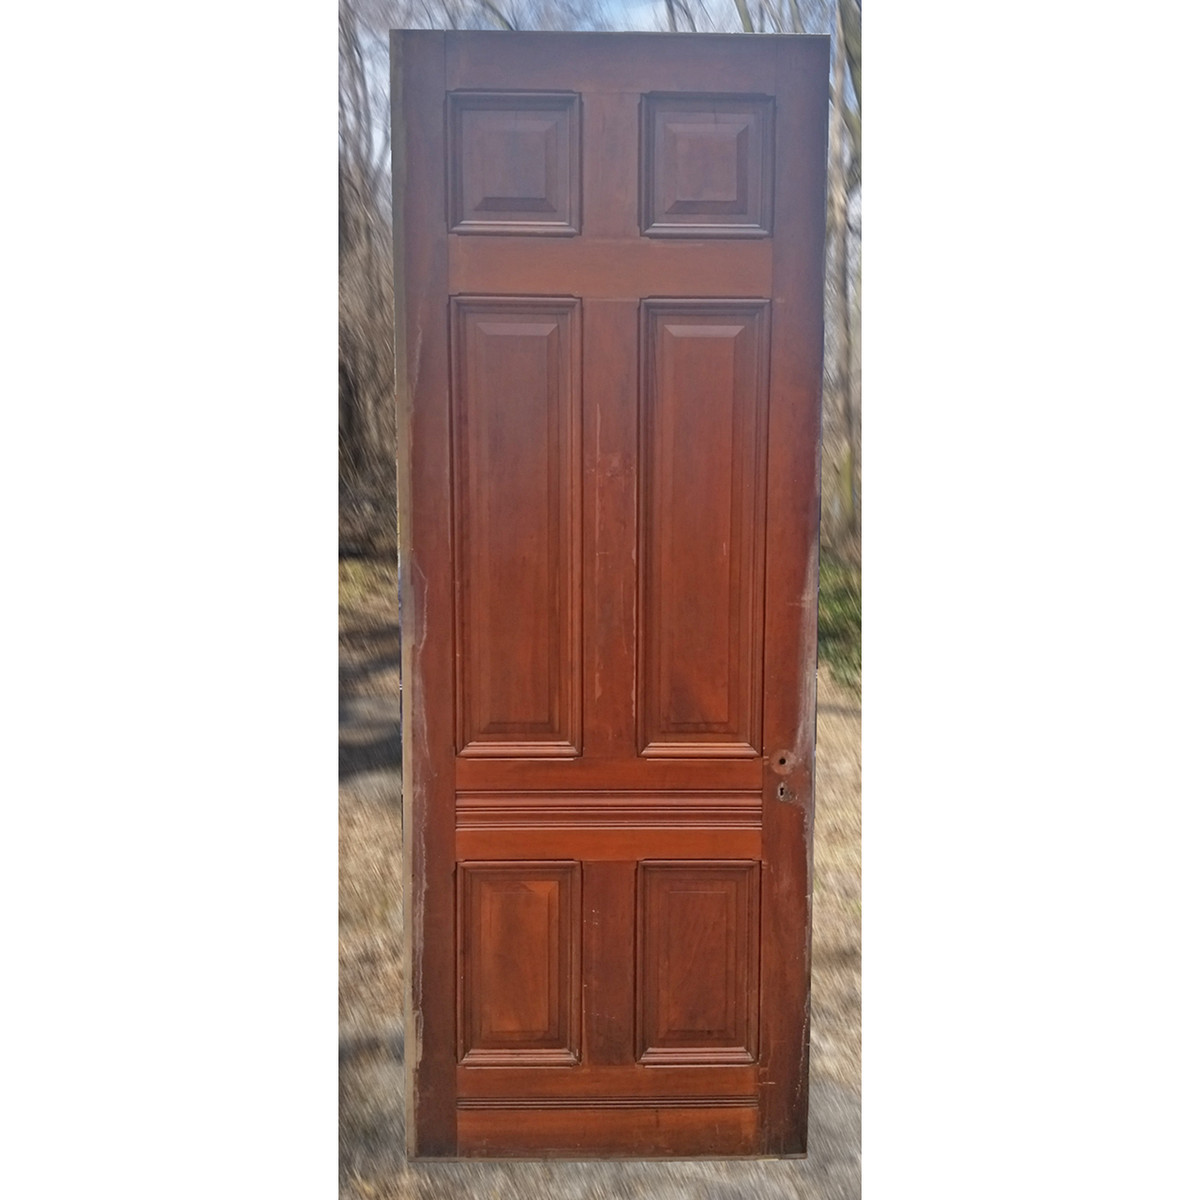 "D19029 - Antique Victorian Six Panel Cherry Door 35-7/8"" x 96"""